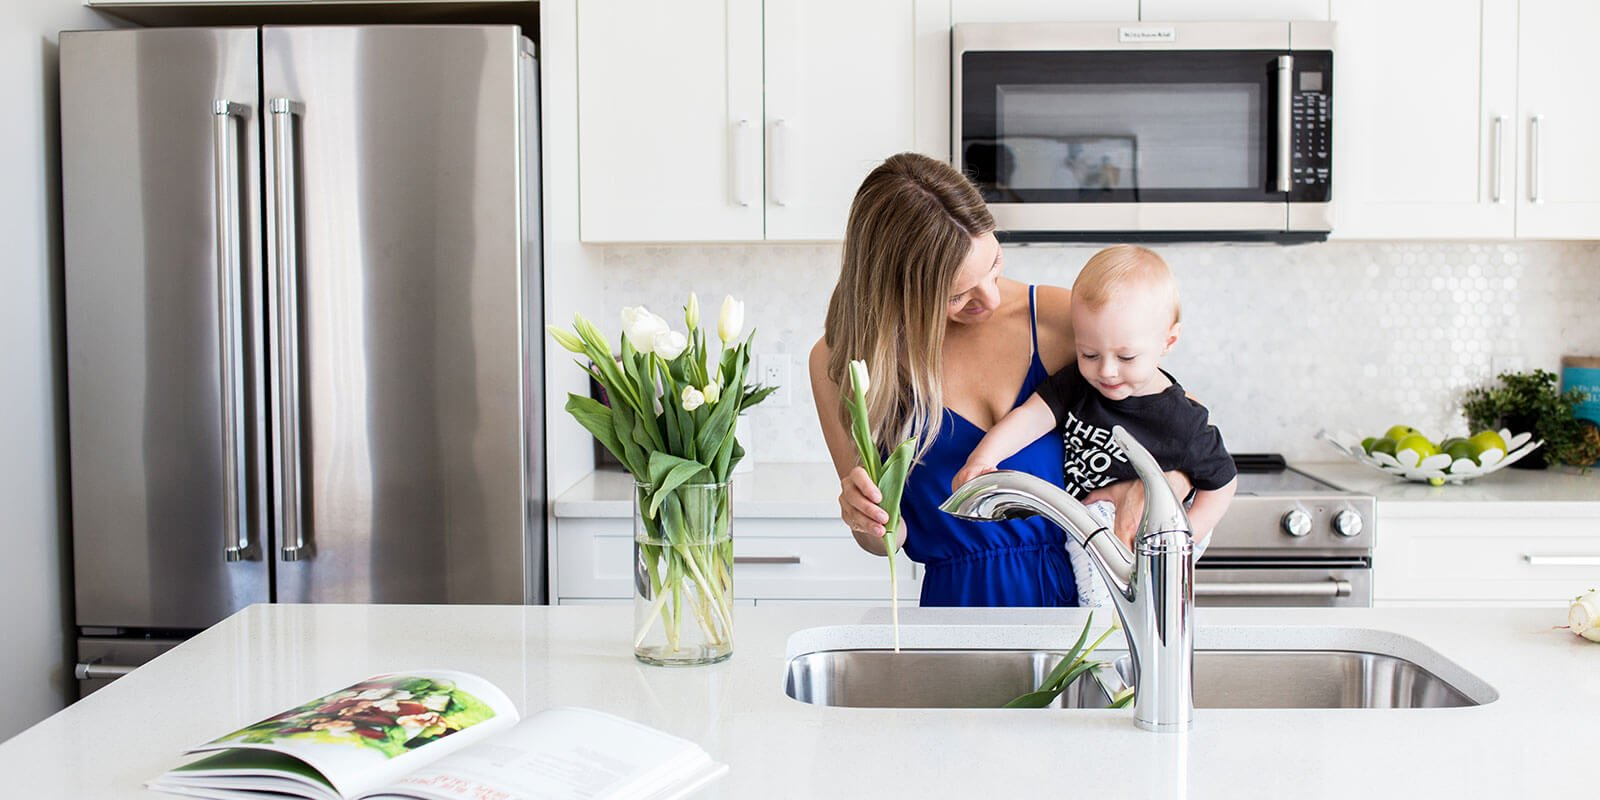 Woman and child in kitchen